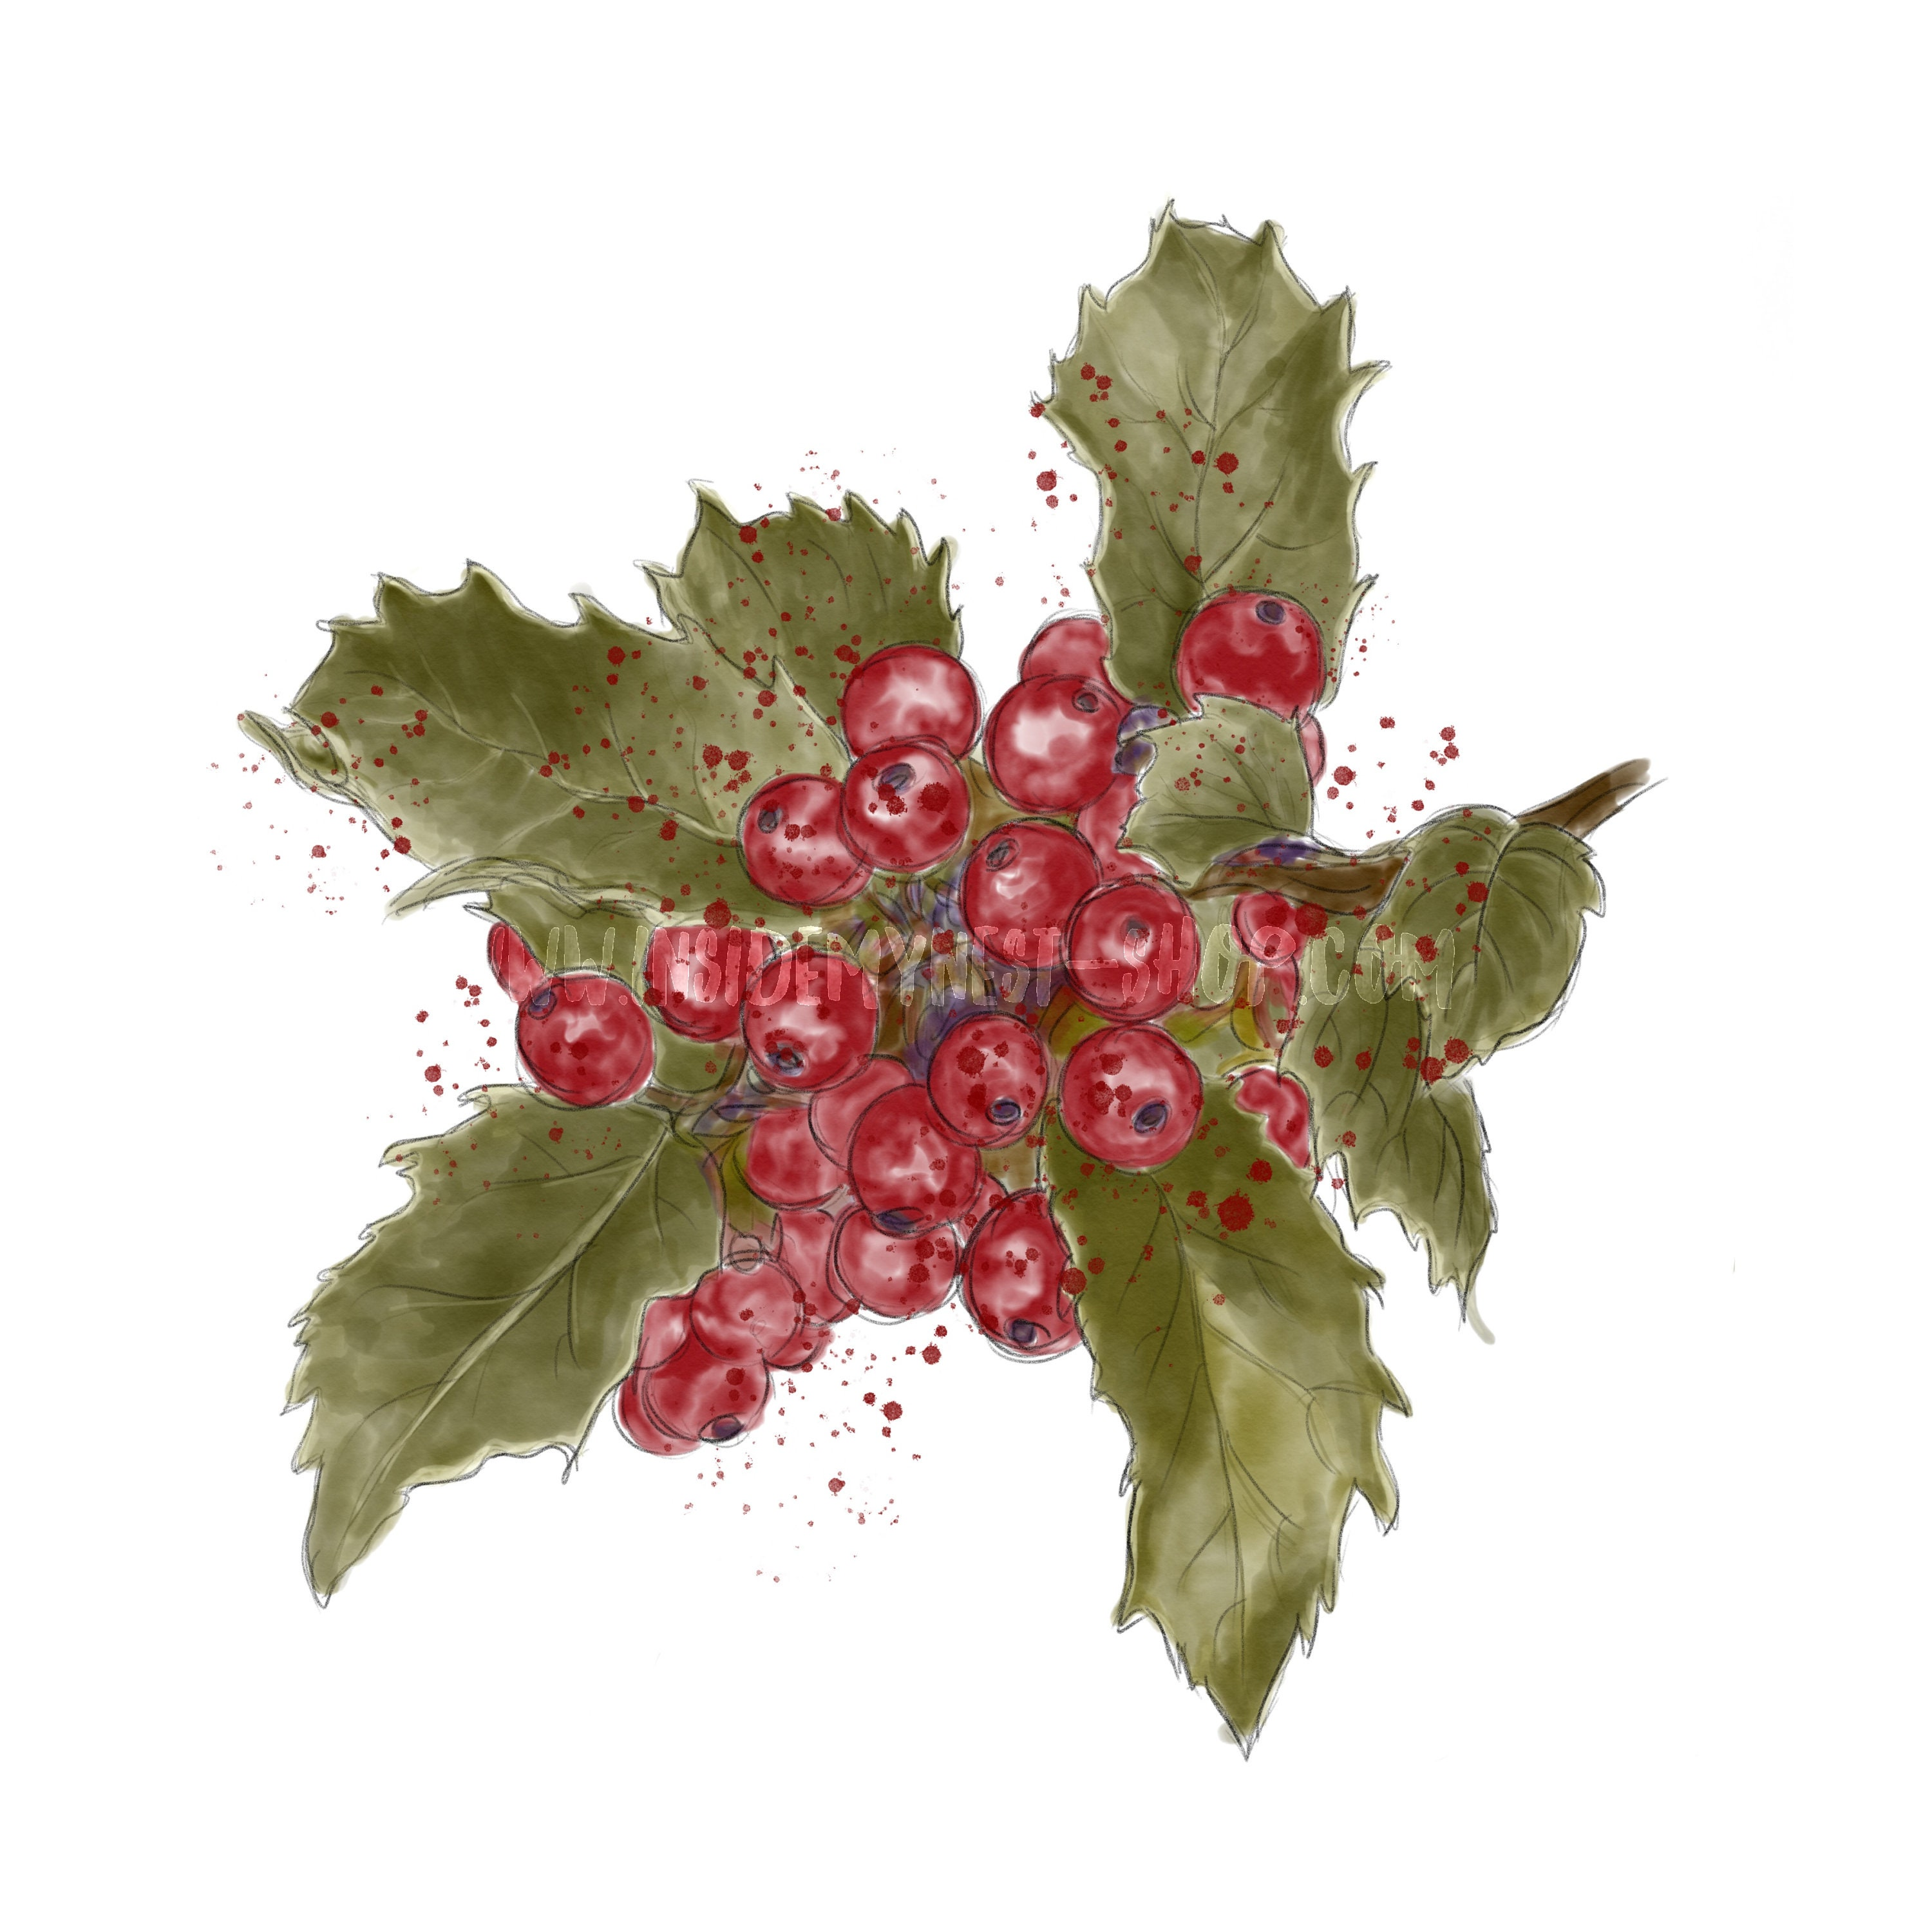 Christmas Holly Png.Digital Watercolour Christmas Holly Leaves Red Berries